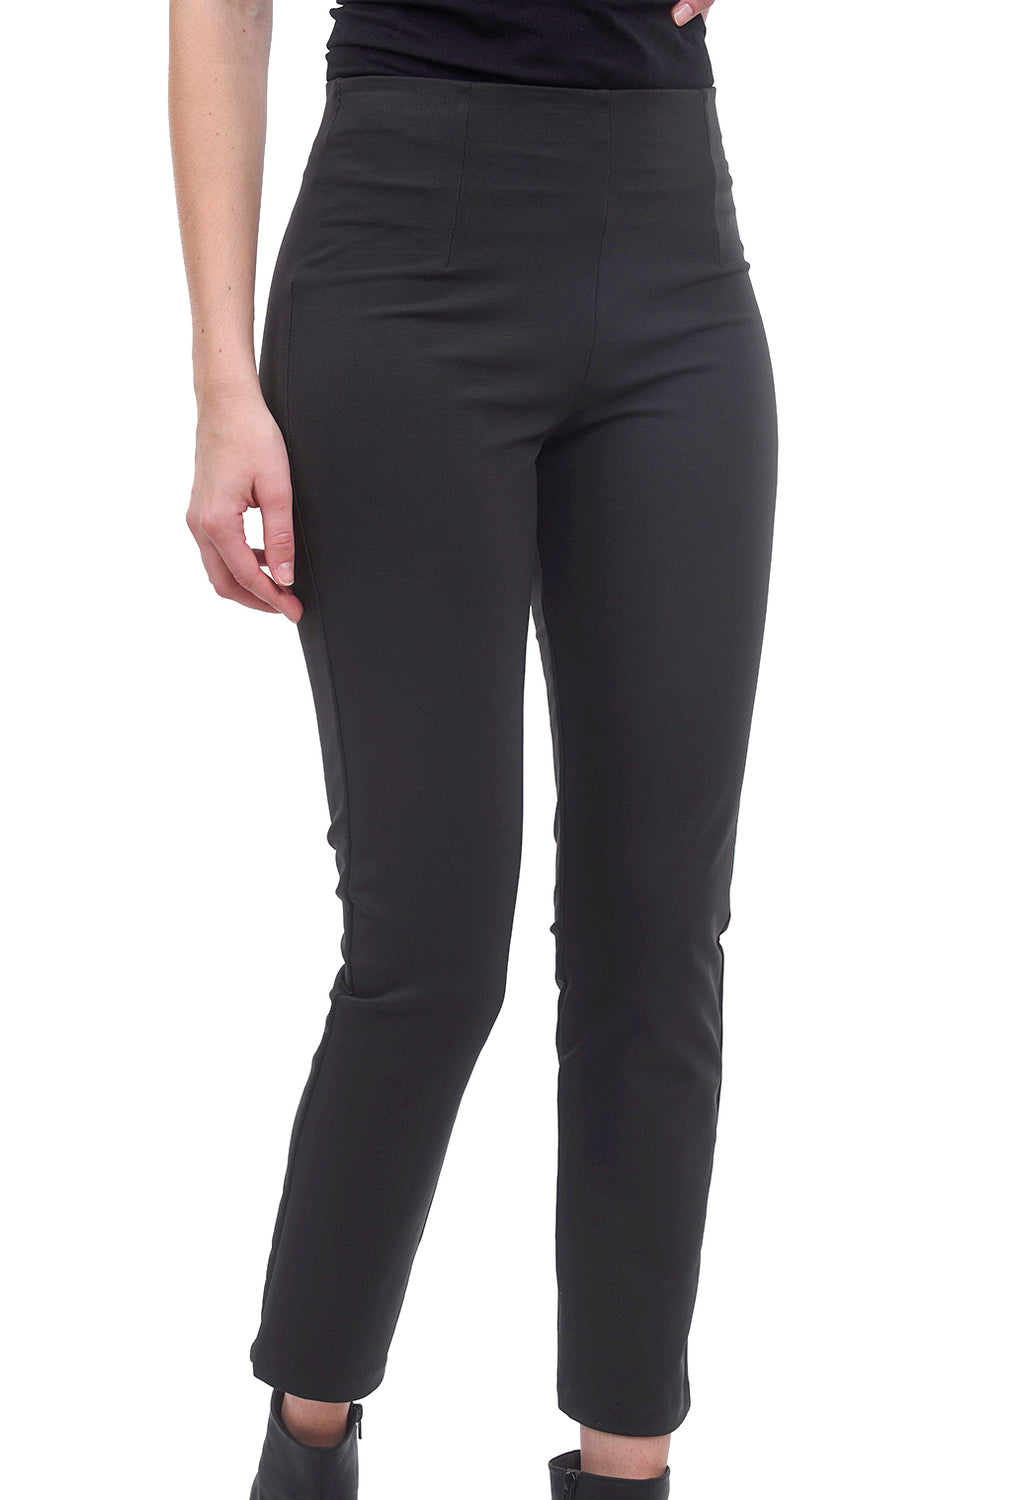 Equestrian Zani Ponte Tech Pants, Steel